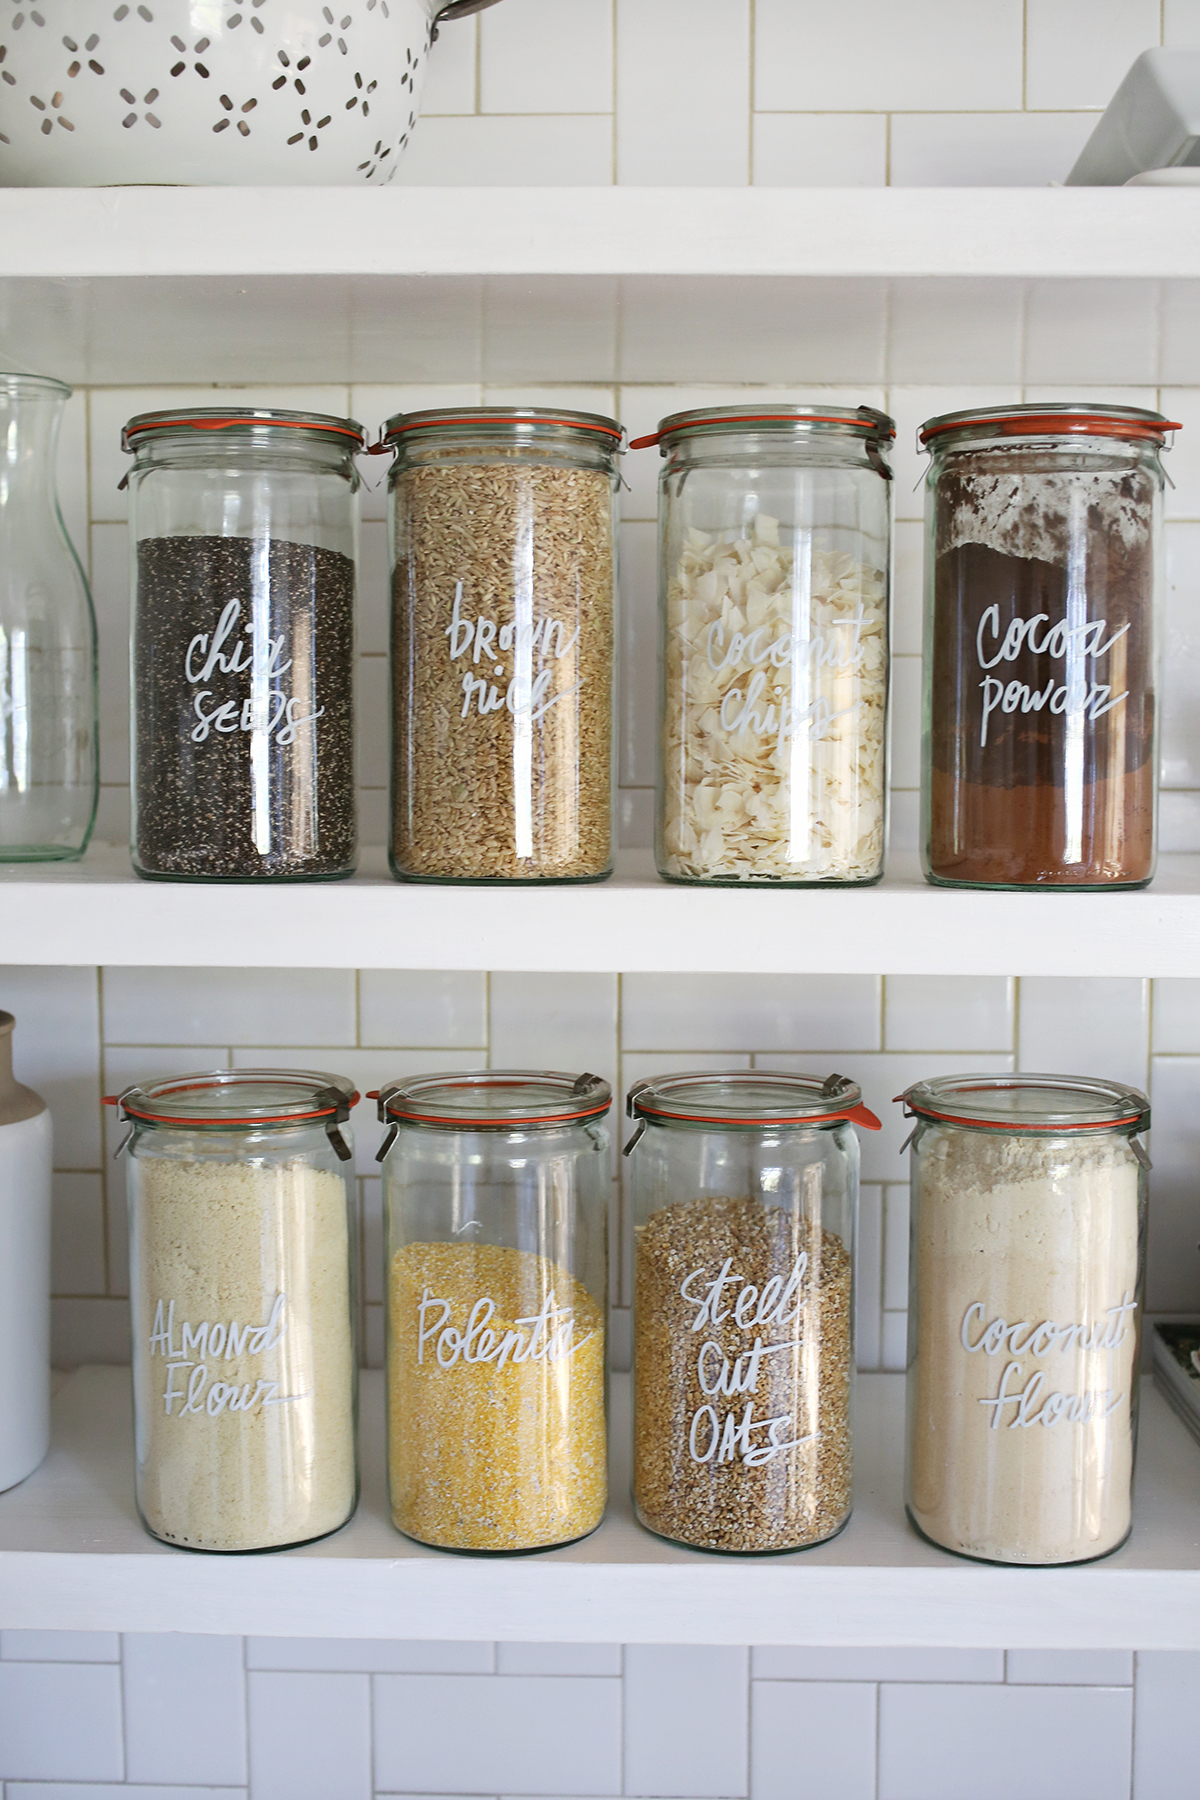 Try This! Paint Pen Kitchen Organization via A Beautiful Mess